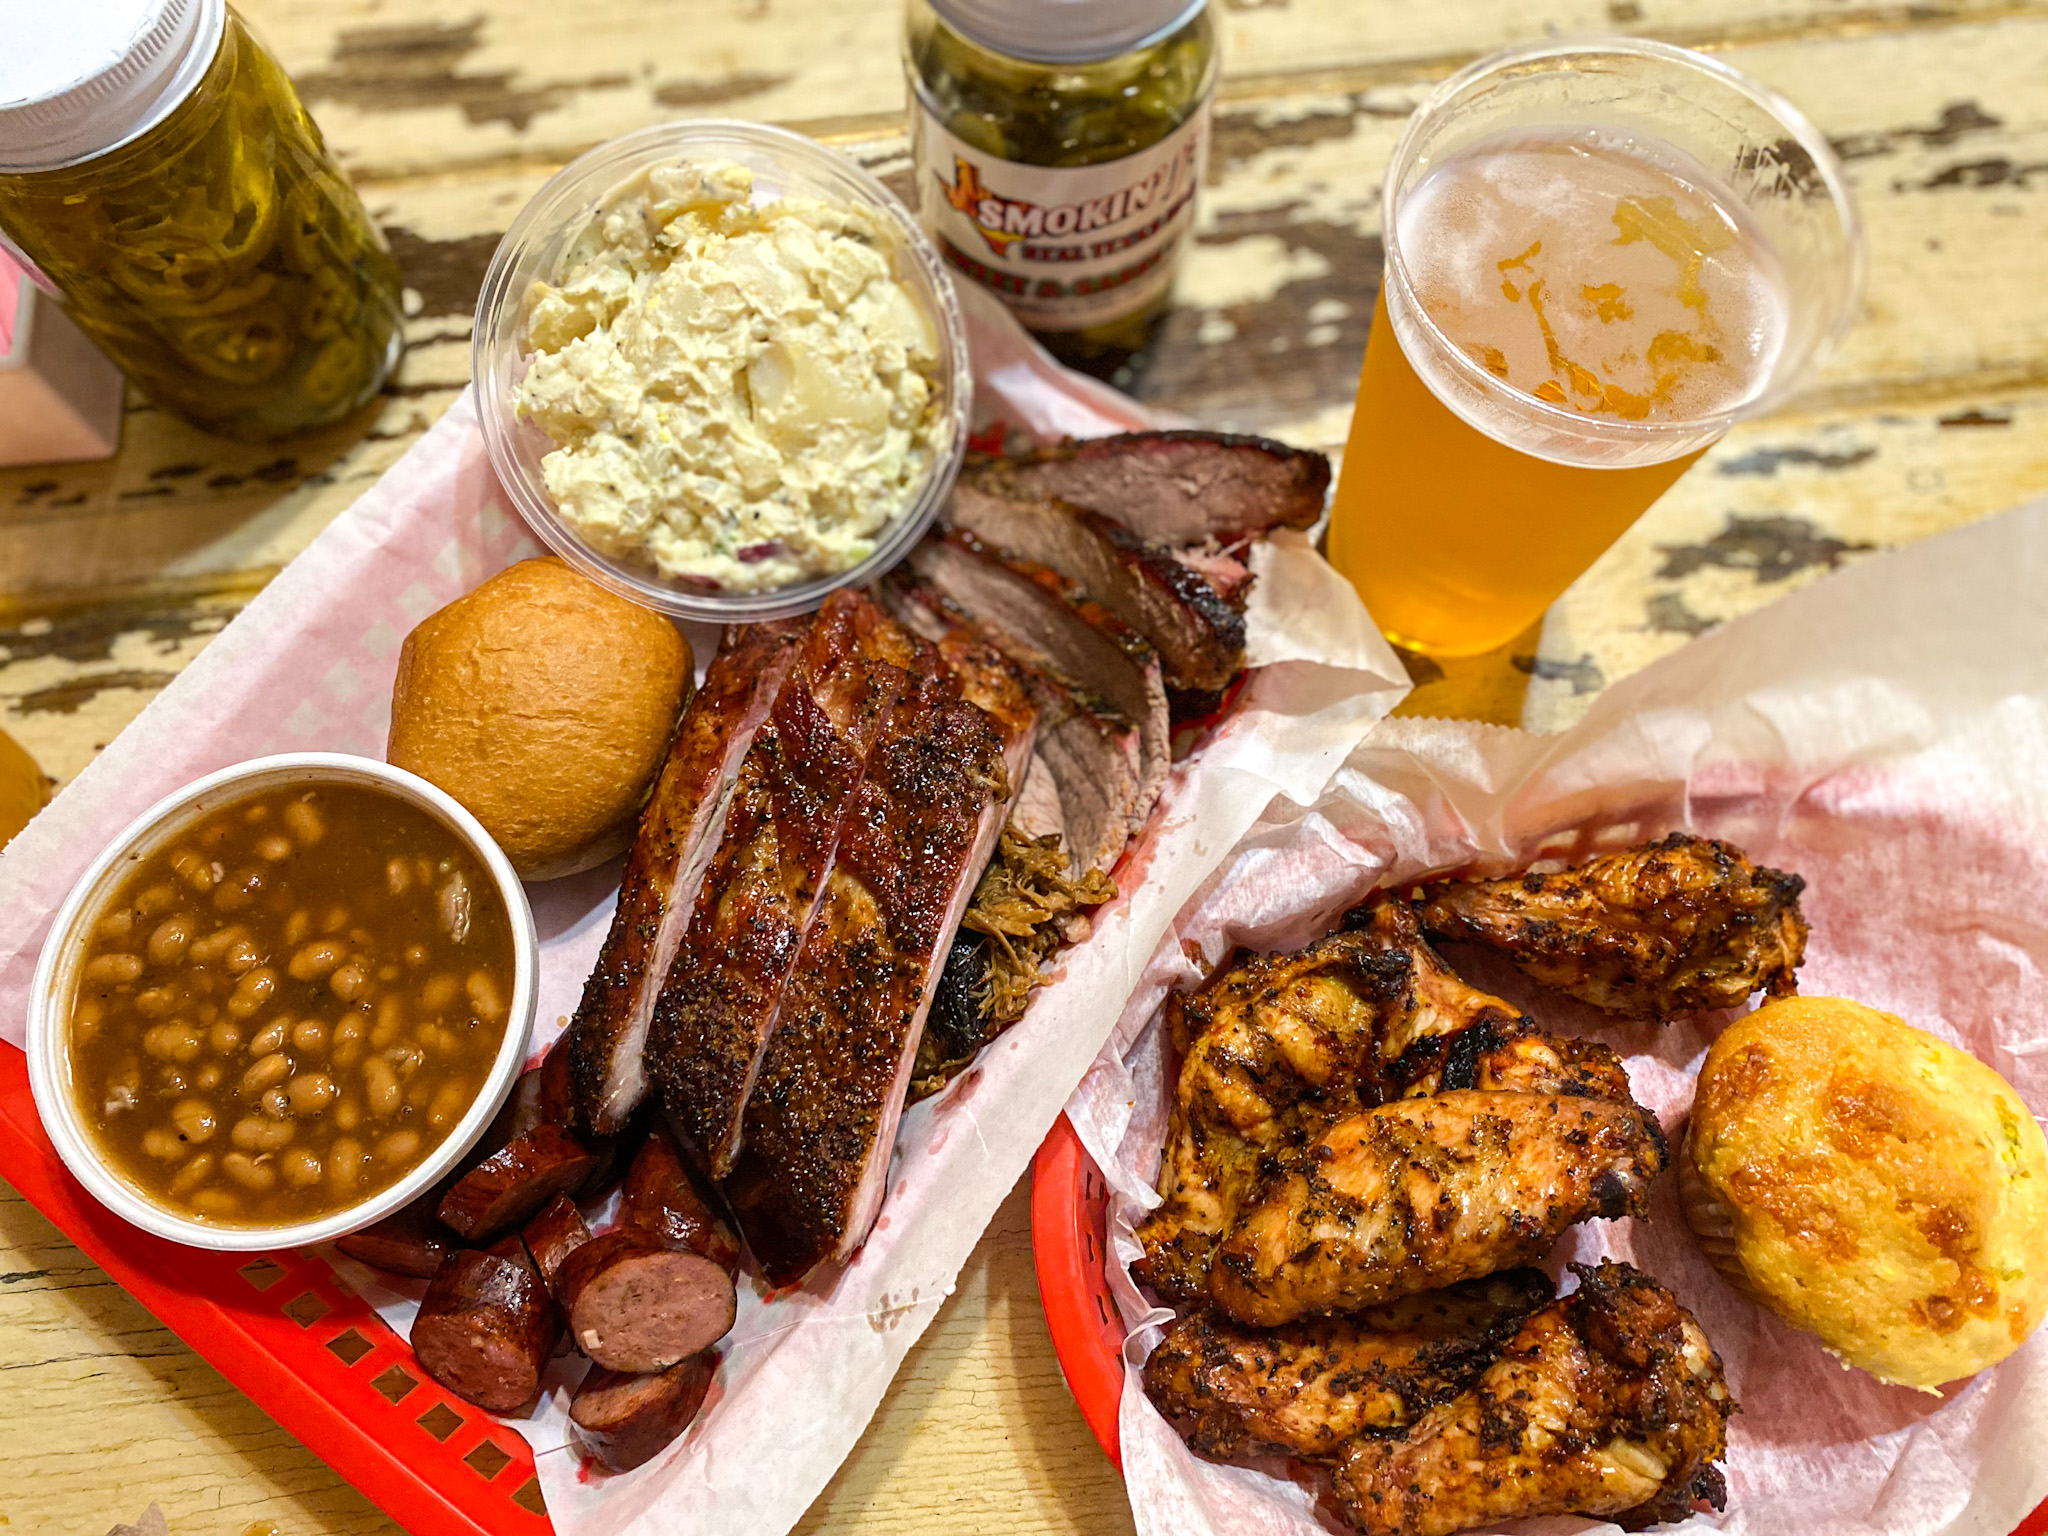 Top 5 Places for Barbecue in St. Petersburg, FL 2020